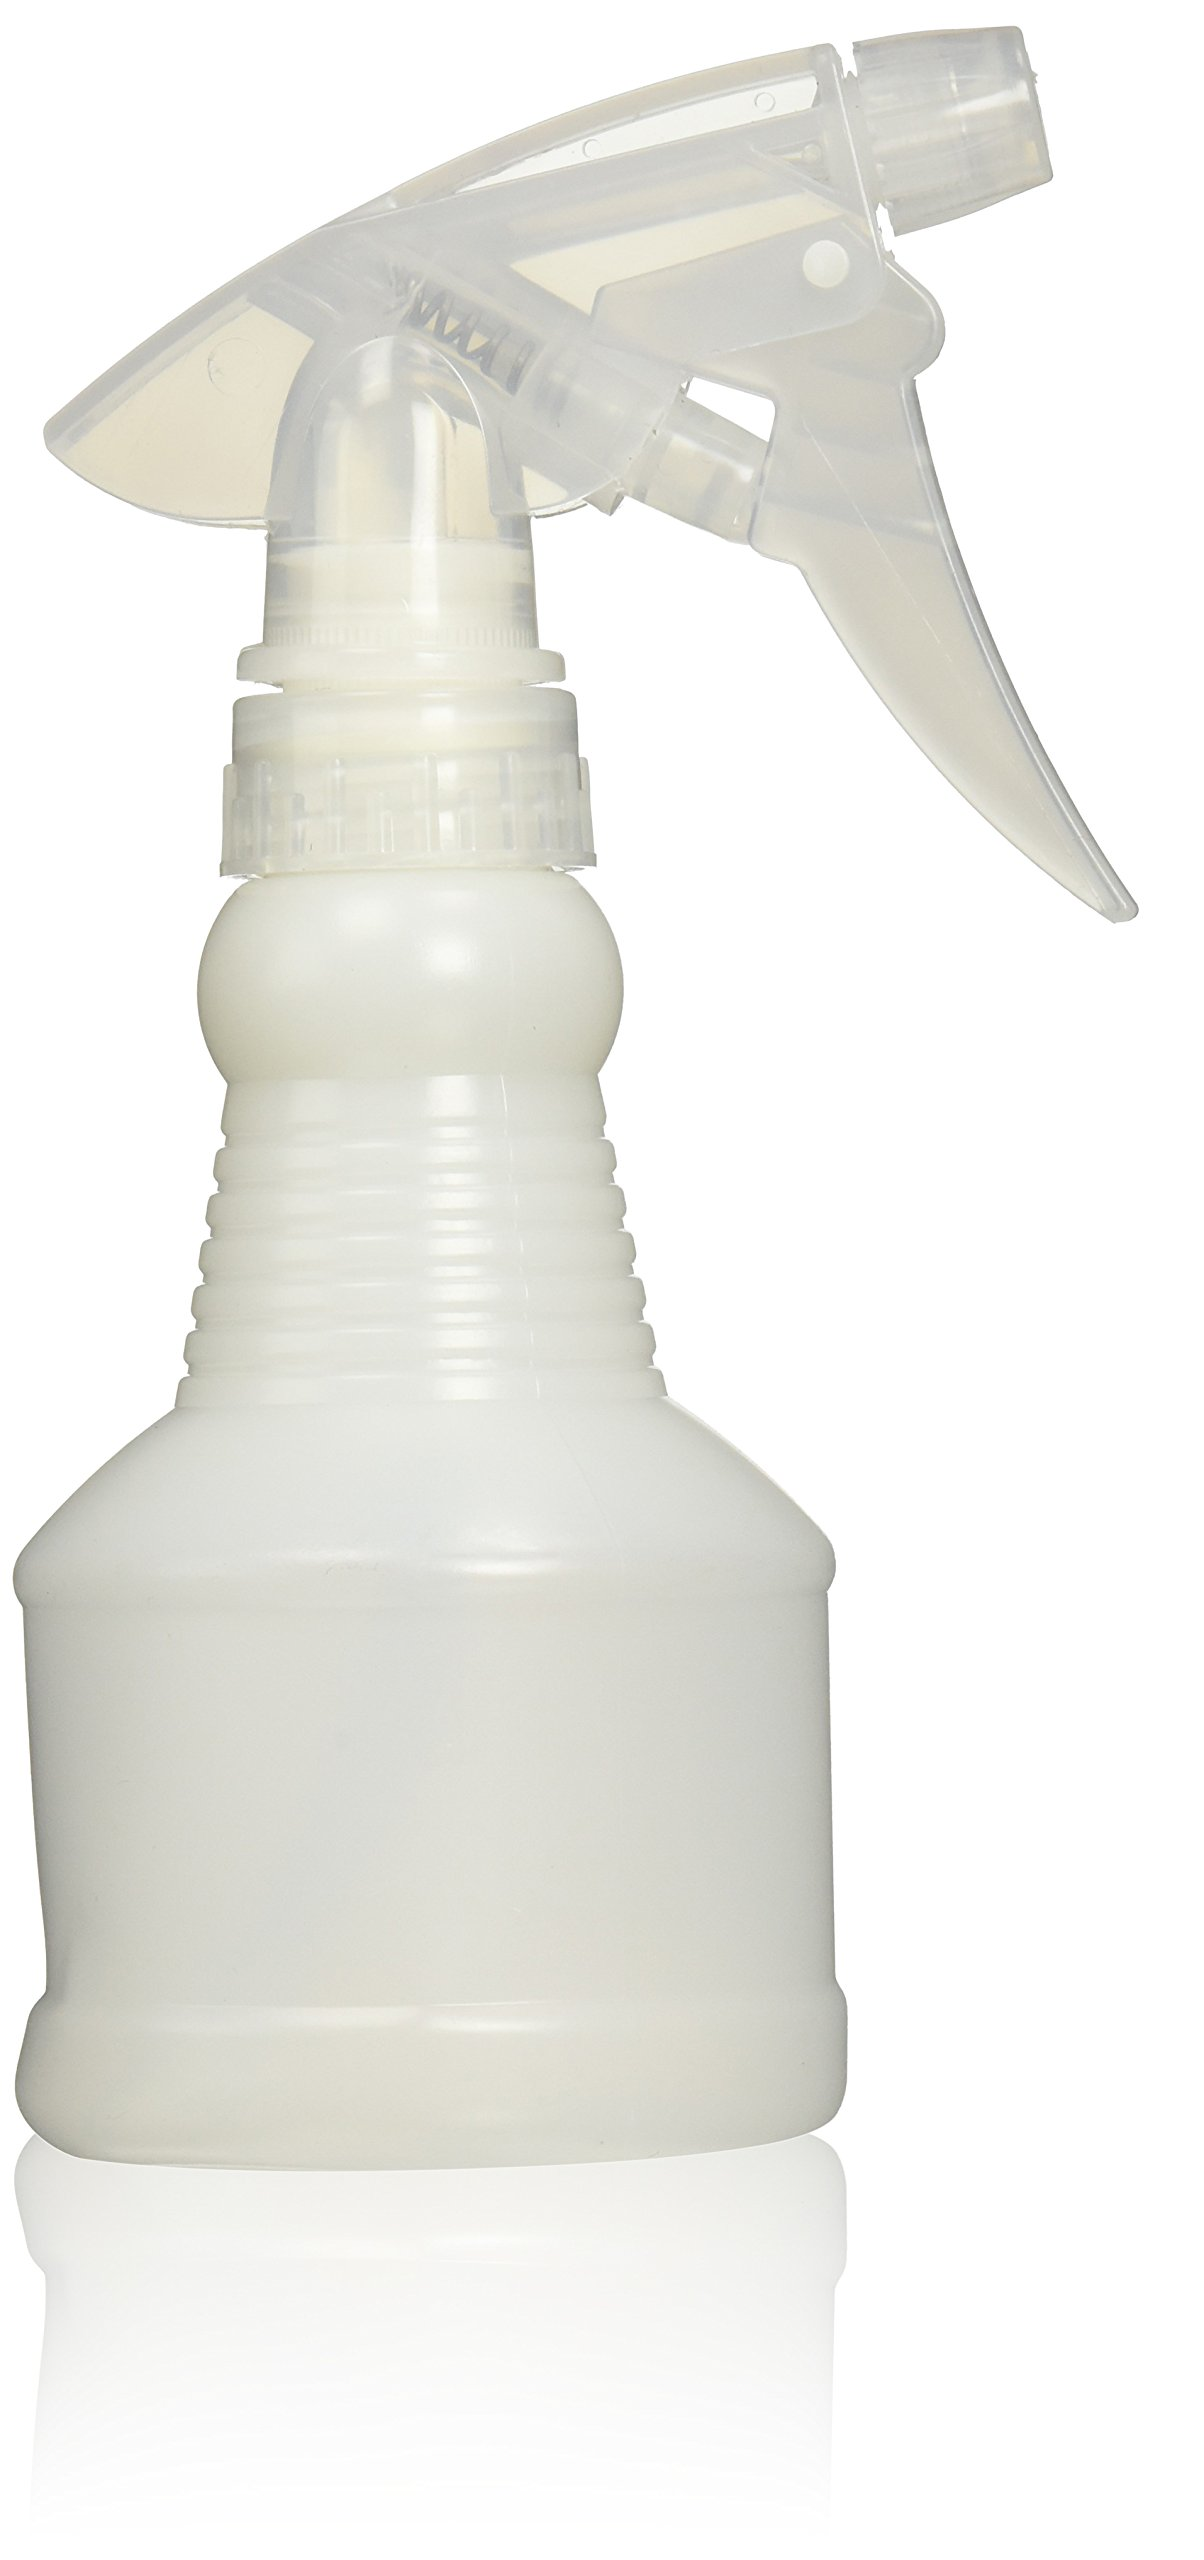 Soft 'N Style Fine Mist Spray Bottle 8 oz. (Pack of 6) by Soft 'N Style